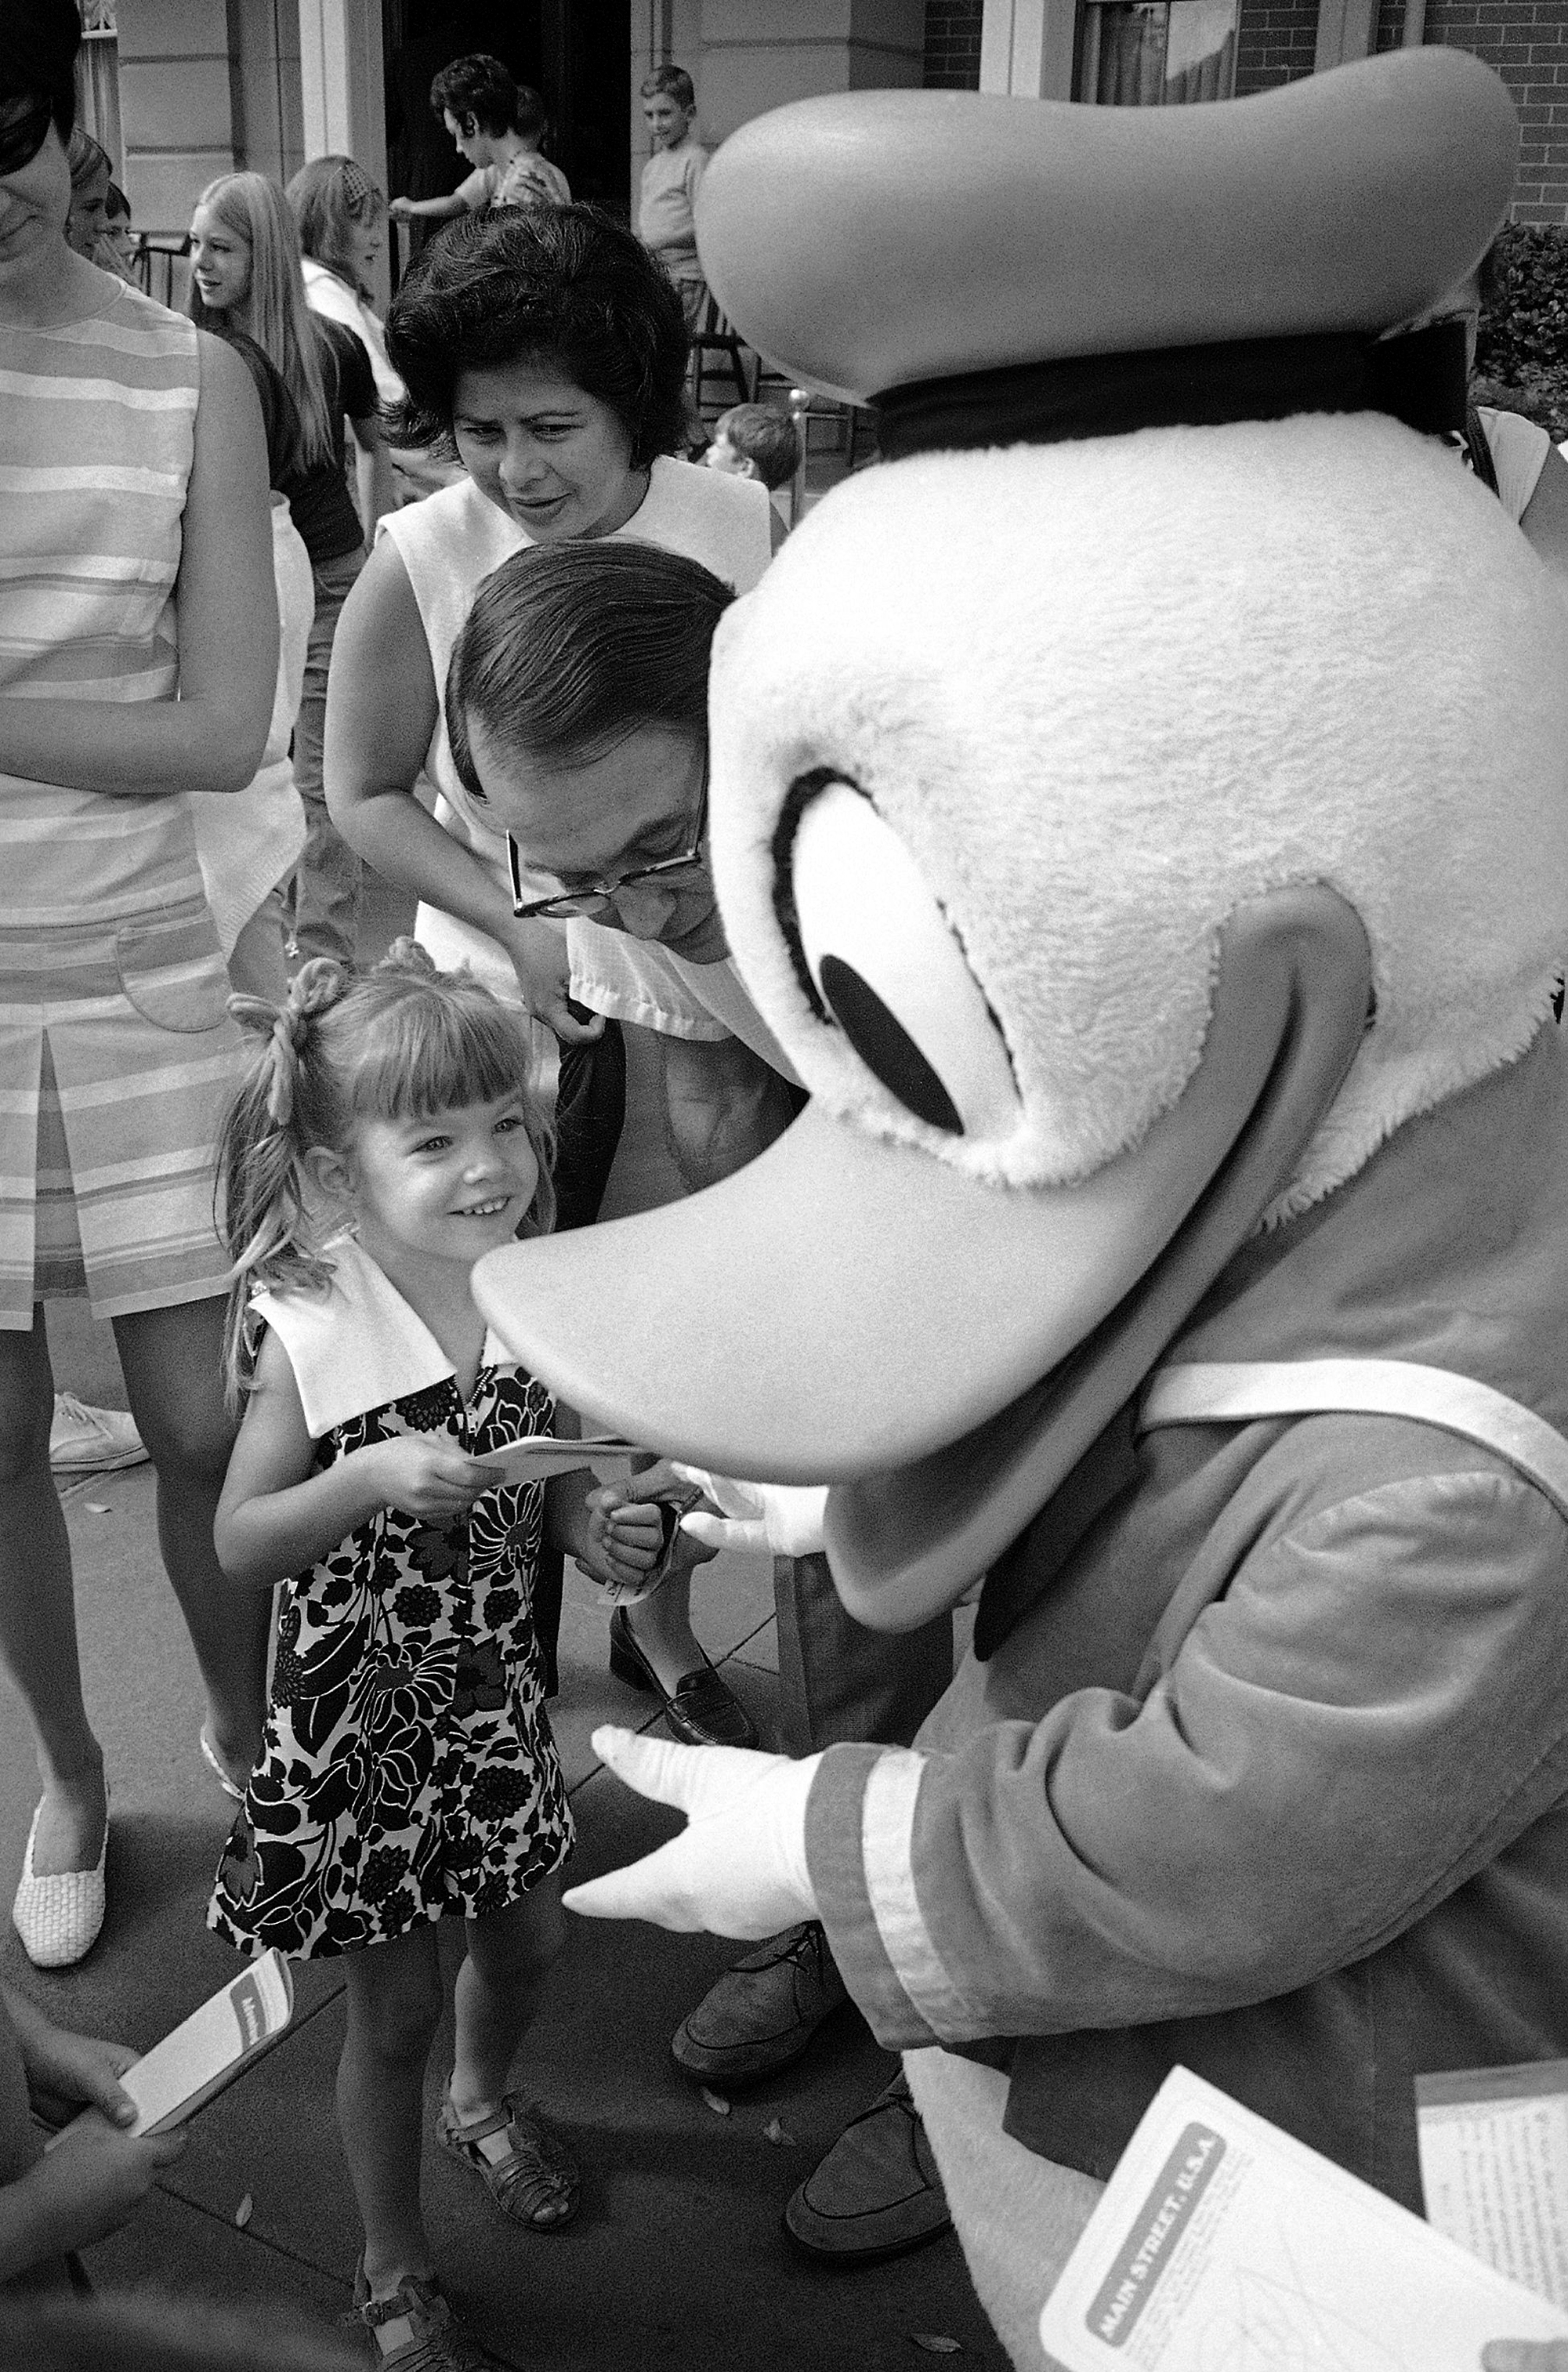 Slide 24 of 33: A delighted little girl meets a larger-than life celebrity at the Magic Kingdom of Disneyland, in Anaheim, Orange County, Calif., Feb. 28, 1974. The county itself has been accused of being a giant playland, a place where people go to escape the problems